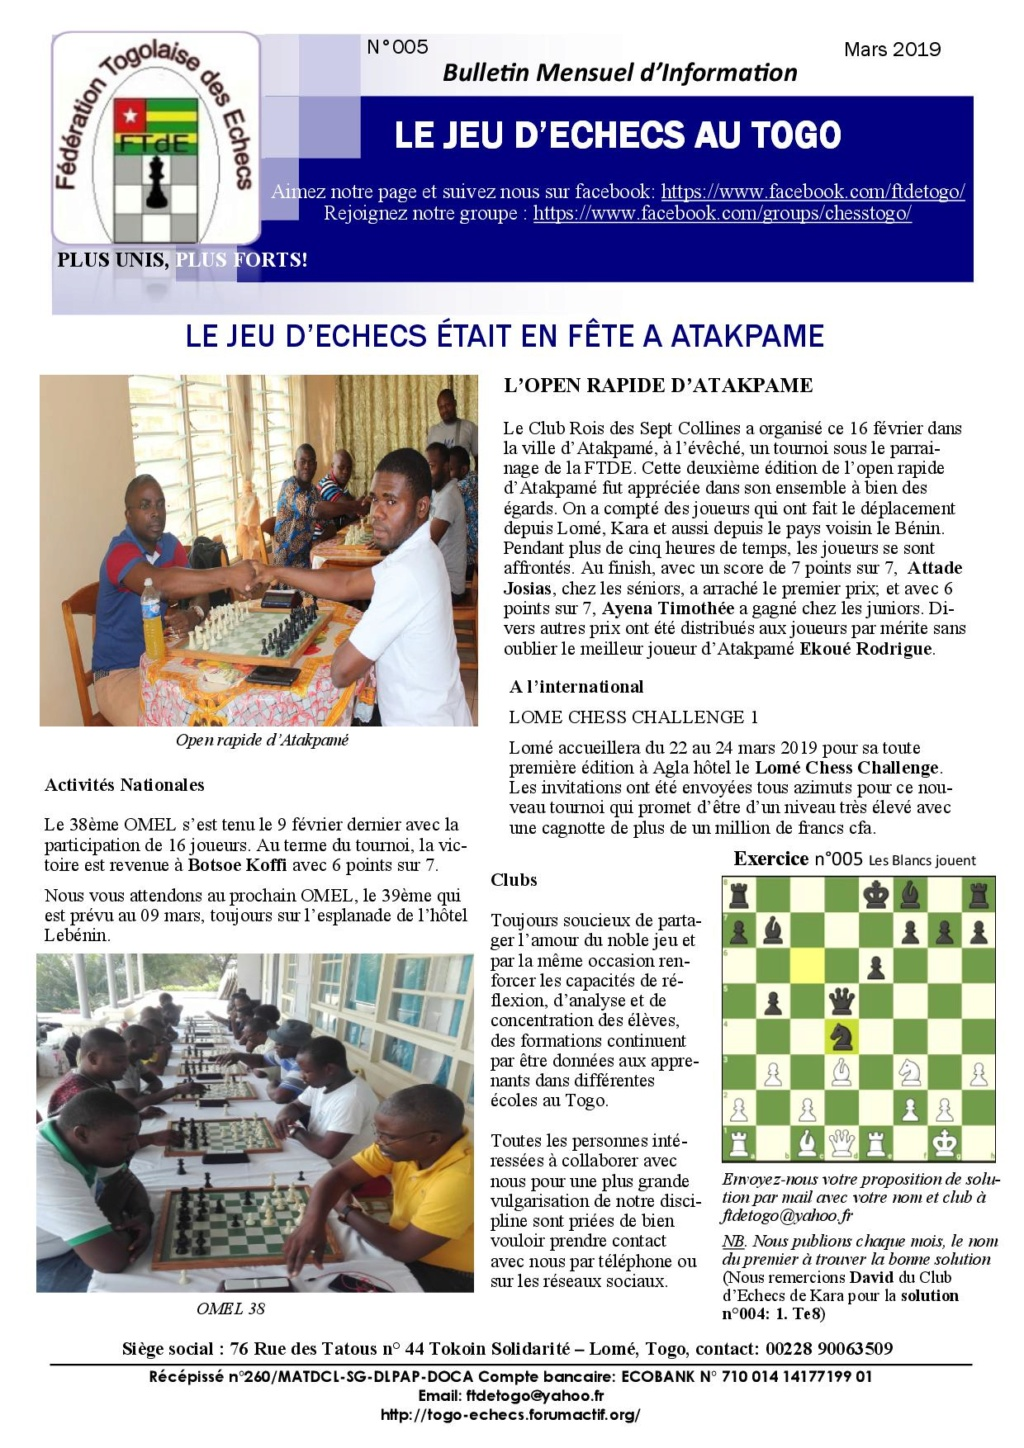 Le Bulletin Mensuel d'Information n° 005 mars 2019 Bmi_ft13